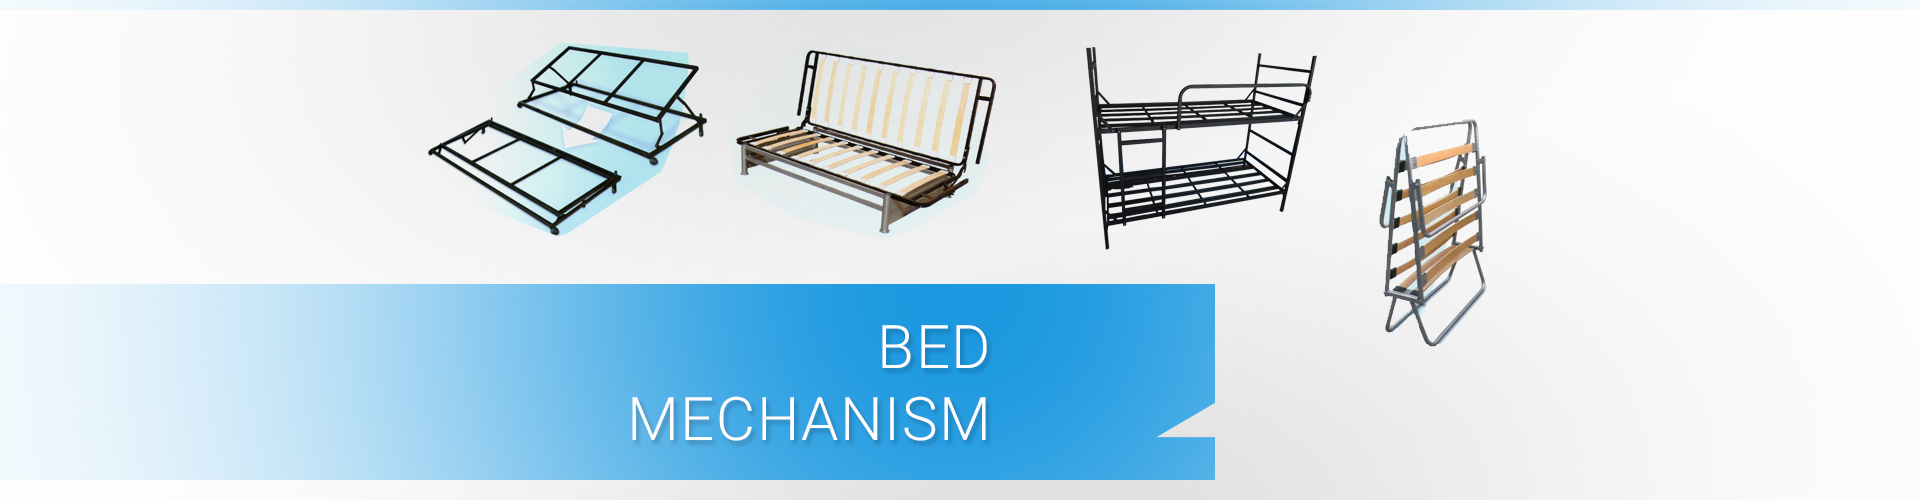 bed_mechanism_en